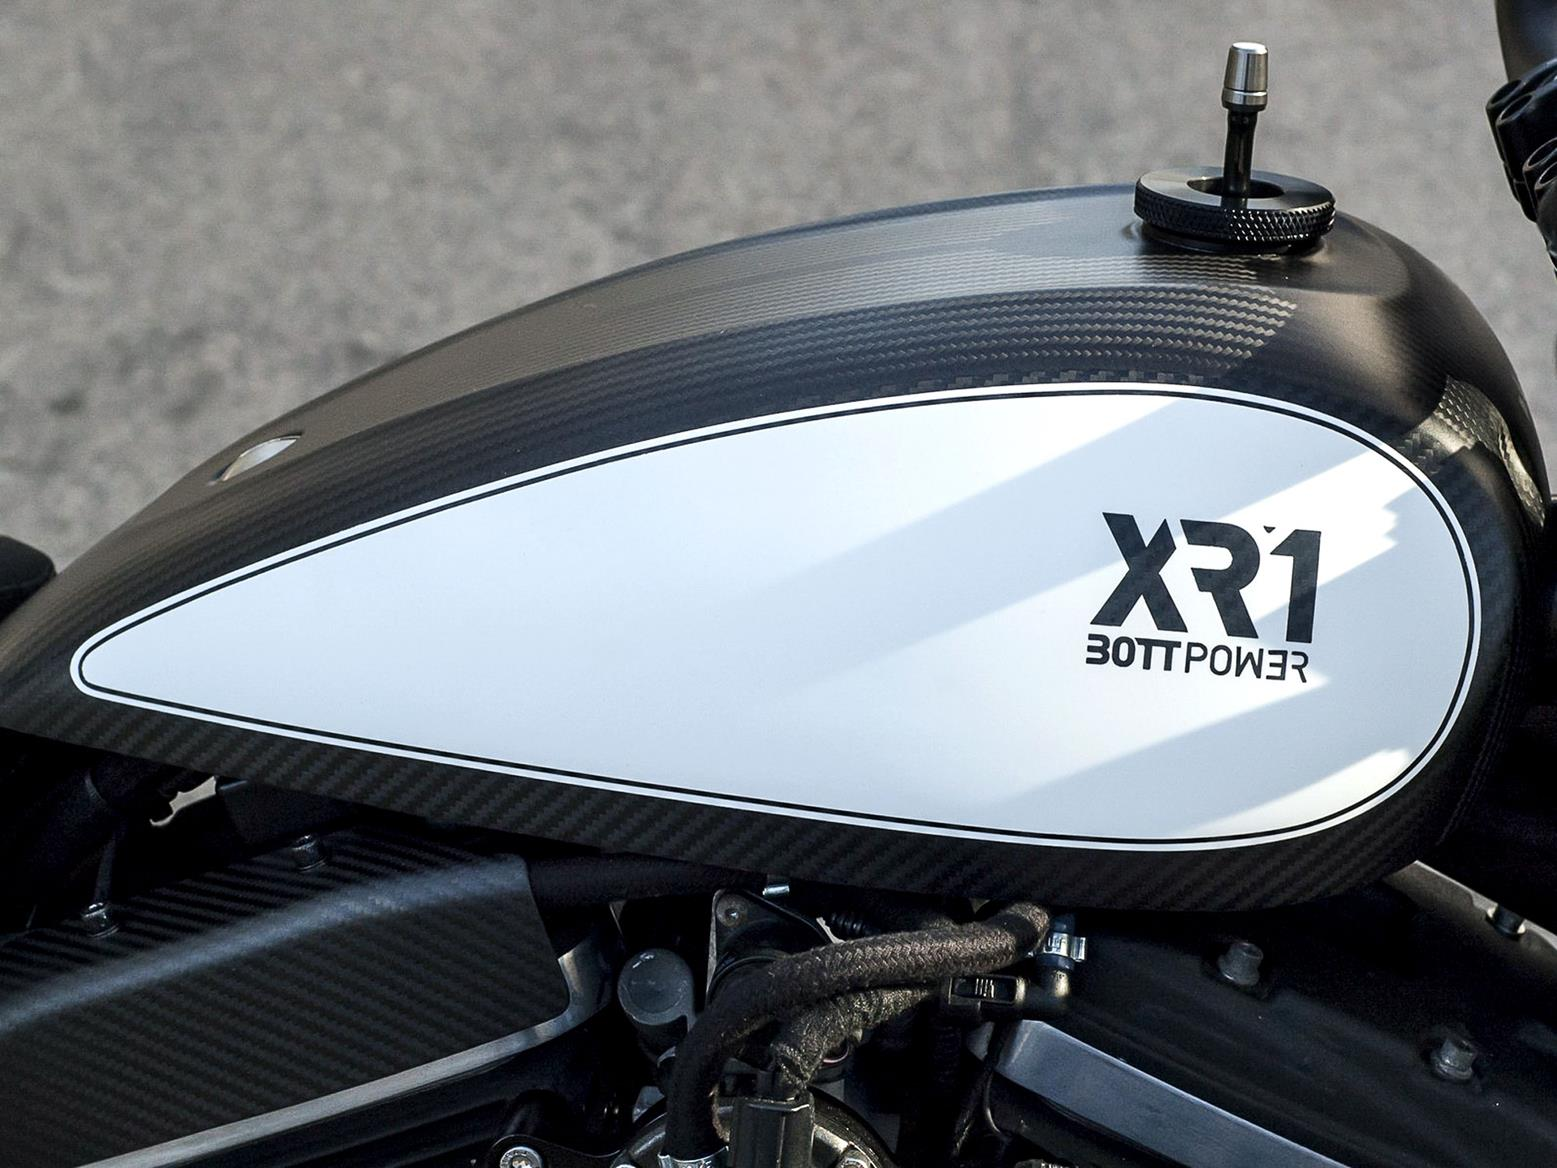 Bott Power XR1 White Carbon fuel tank